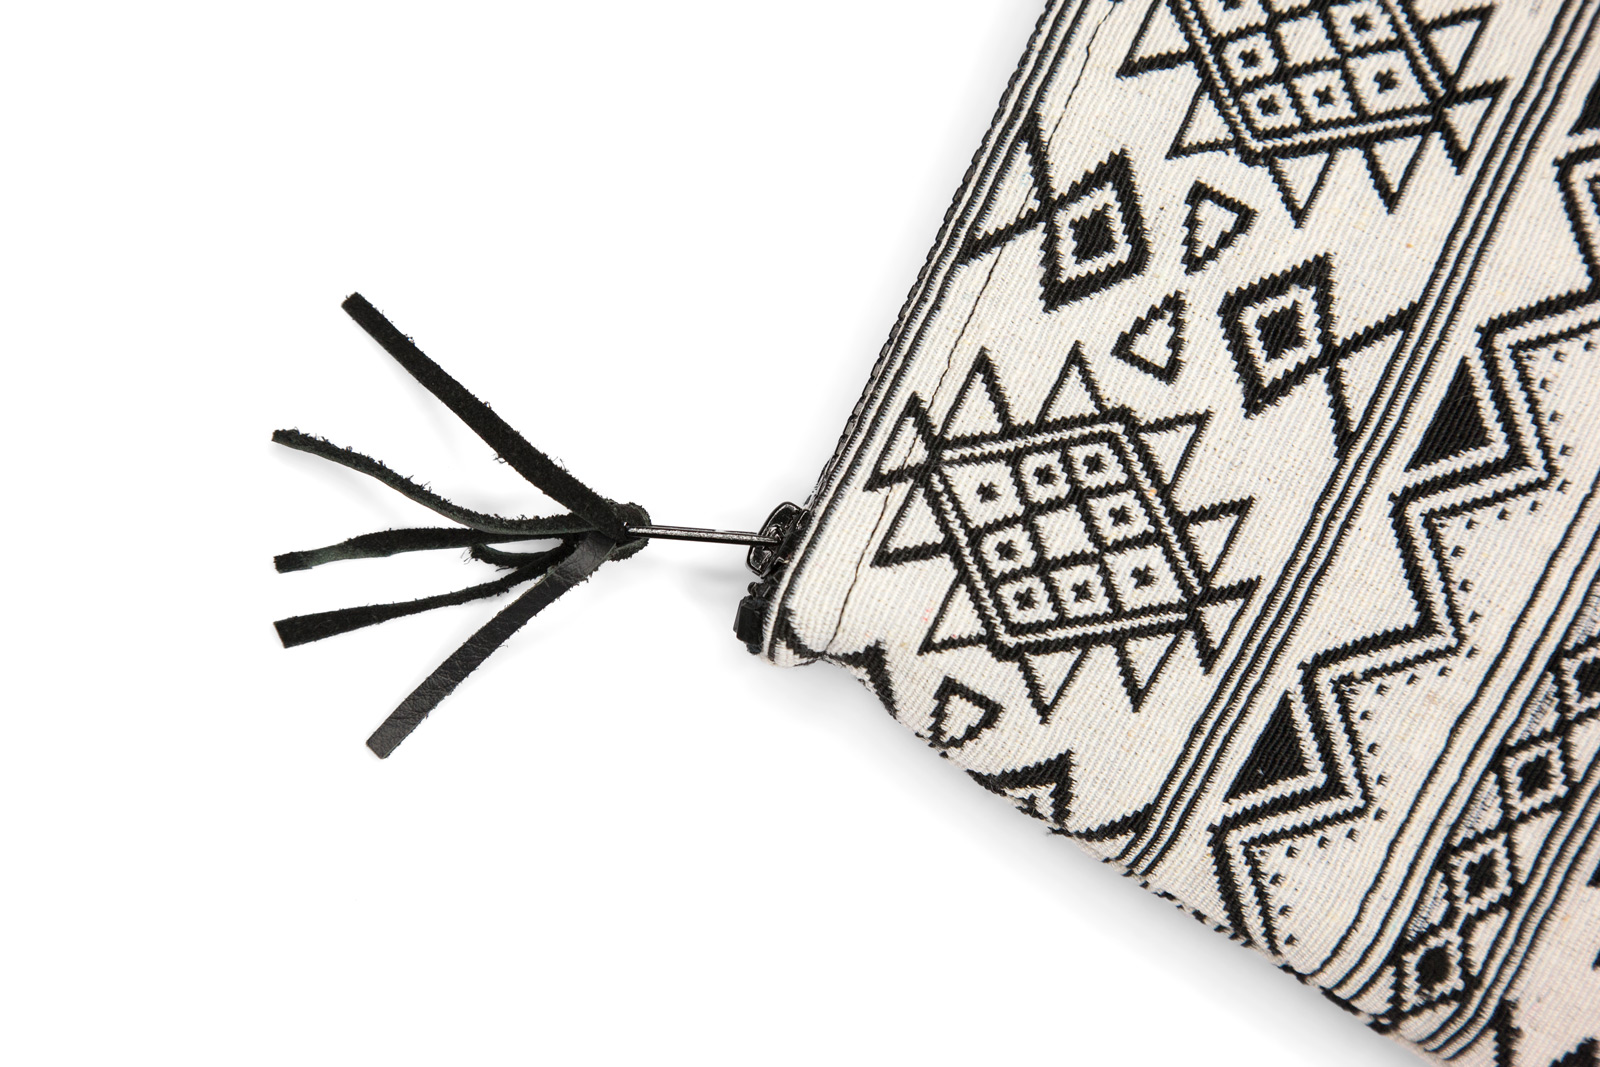 ethical coin purses, hand made accessories, coin purse, women's coin purse, ethical gifts, hand made gifts, fairtrade, made locally, made in Australia